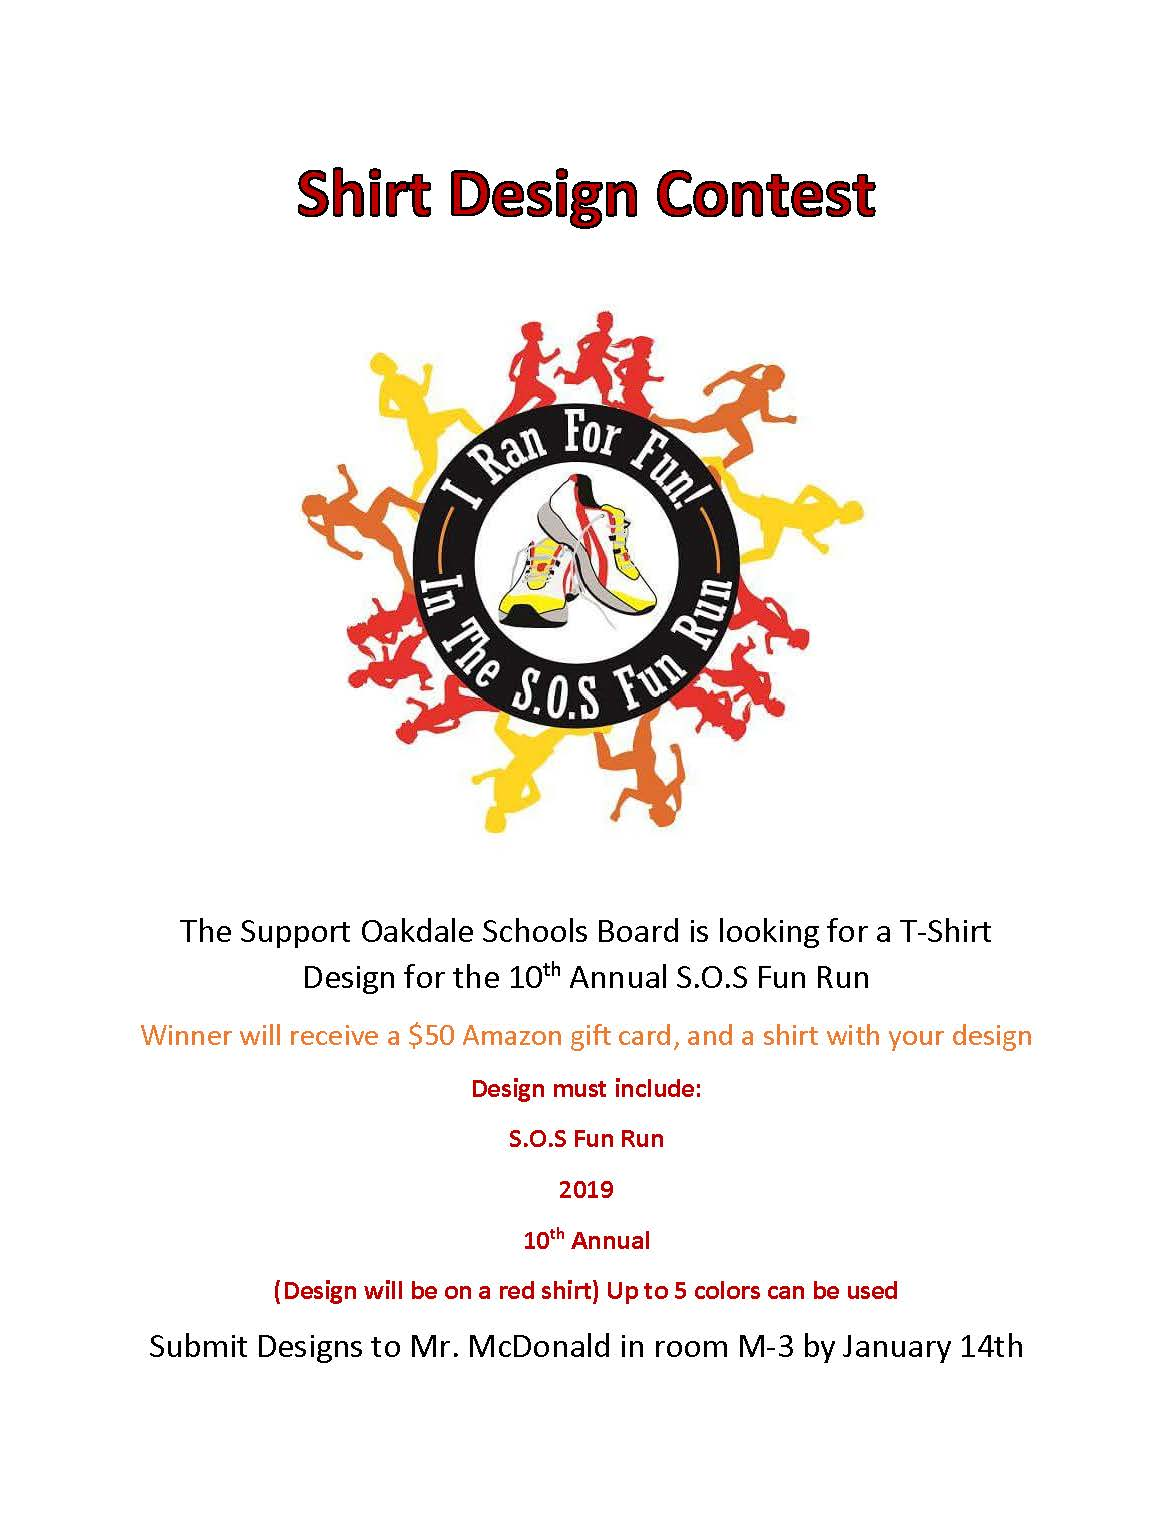 1819 Shirt Design Contest SOS